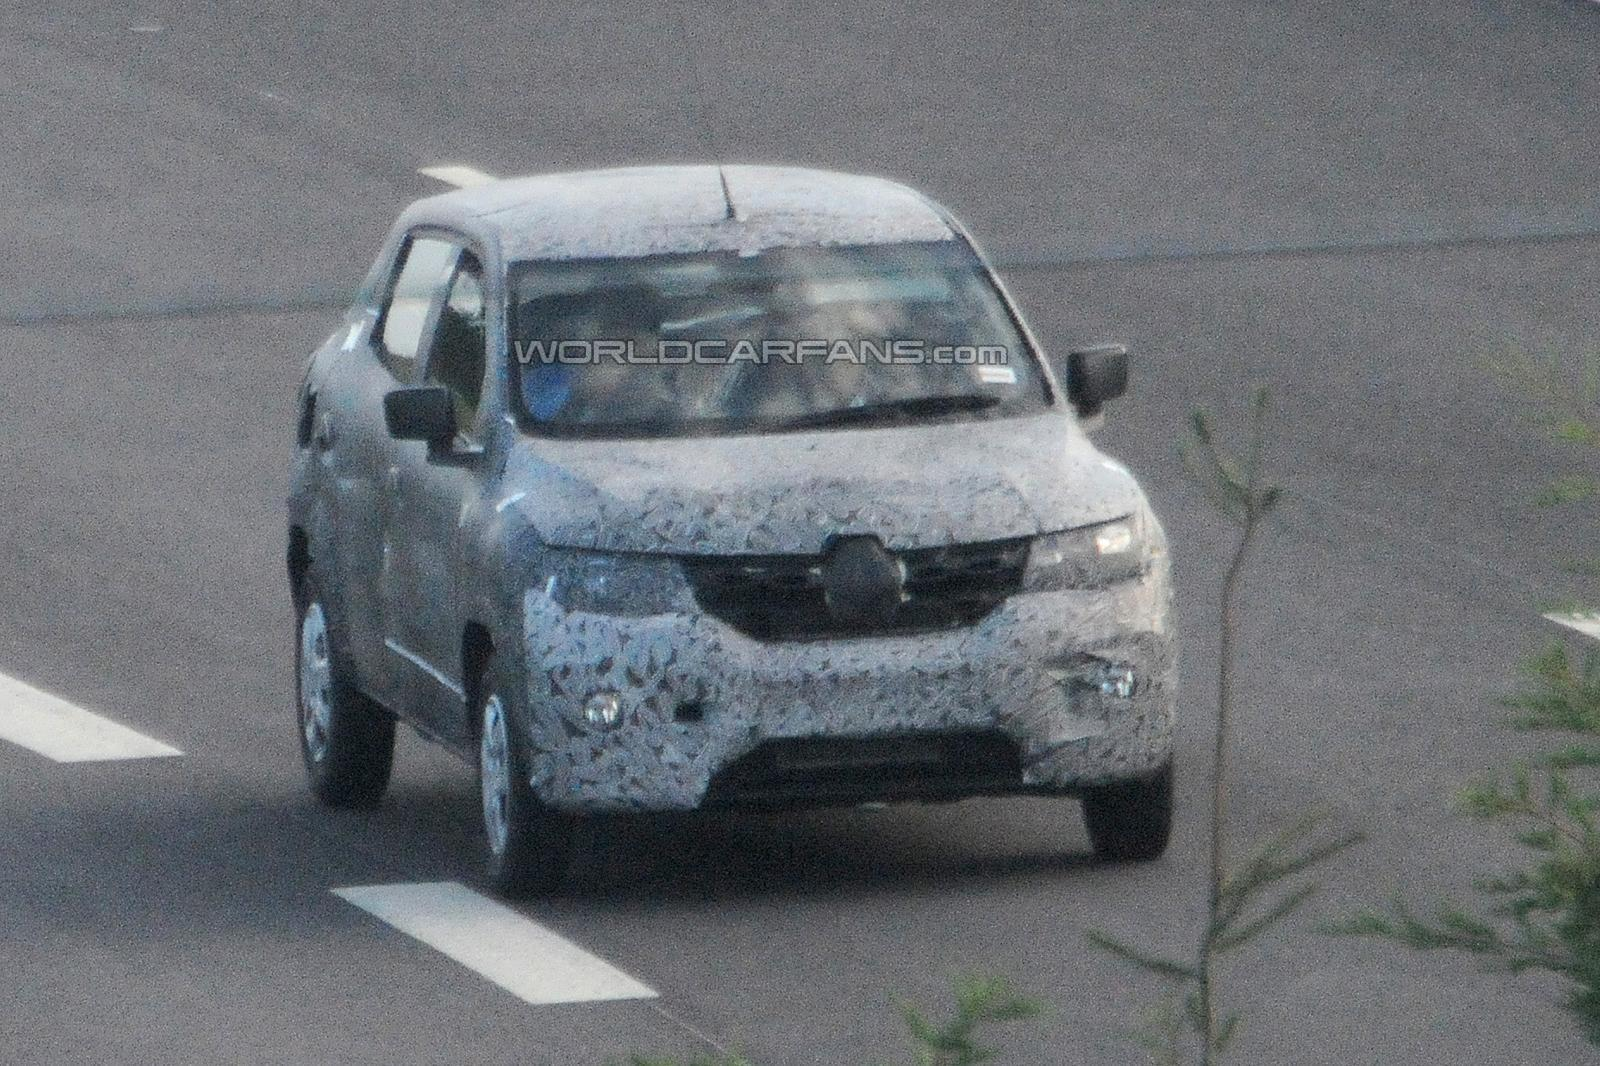 Renault's Ford EcoSport rivaling compact-SUV spied testing